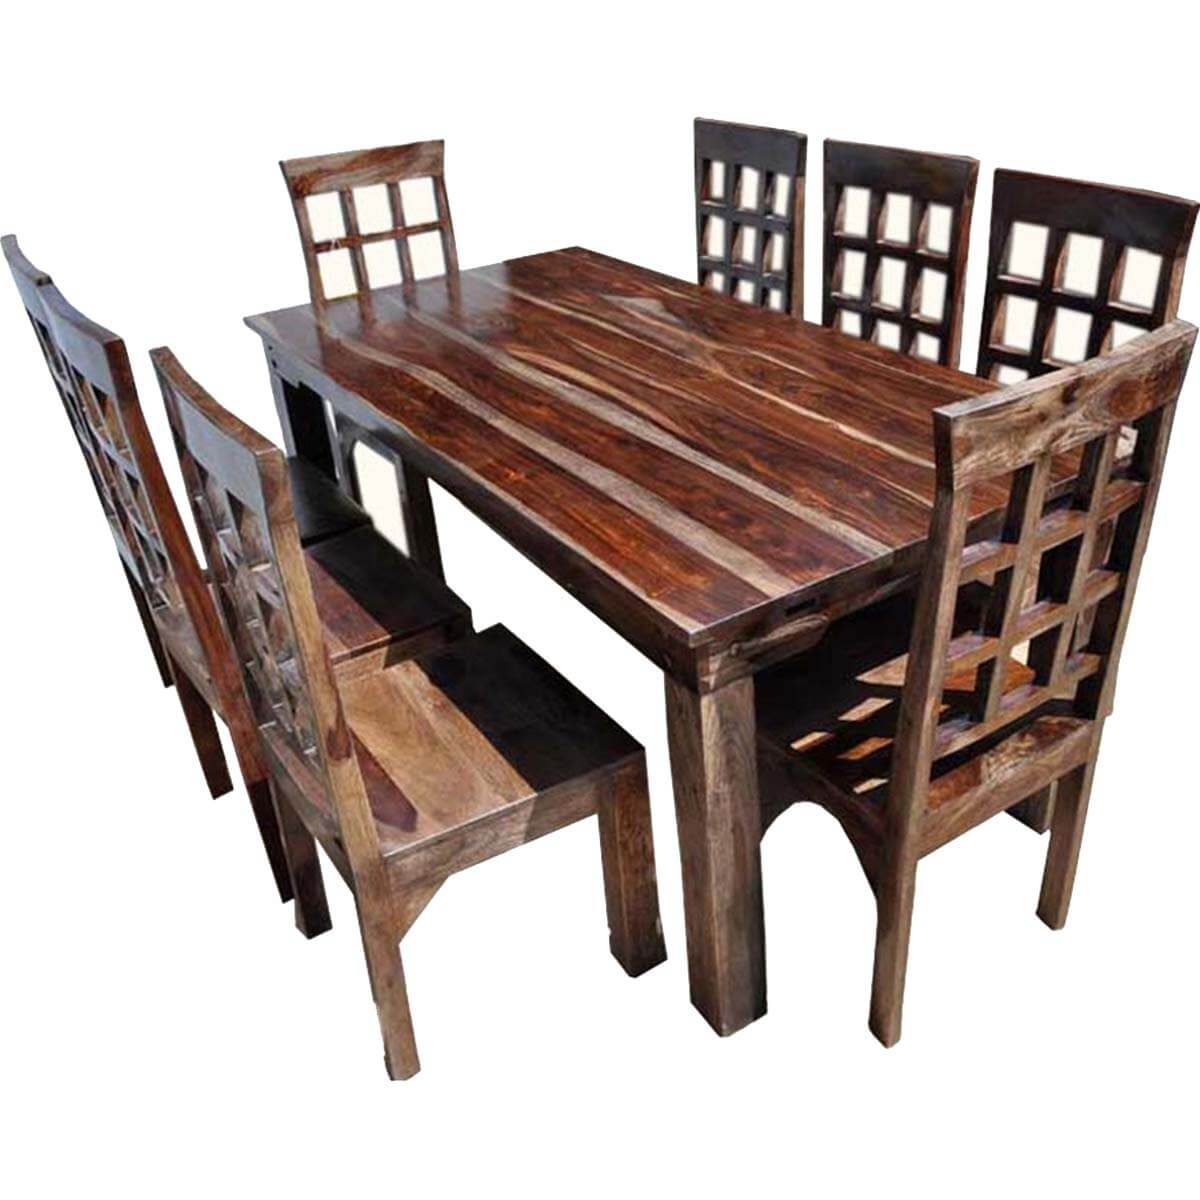 Farmhouse Solid Wood Dining Table Chairs Sideboard Set